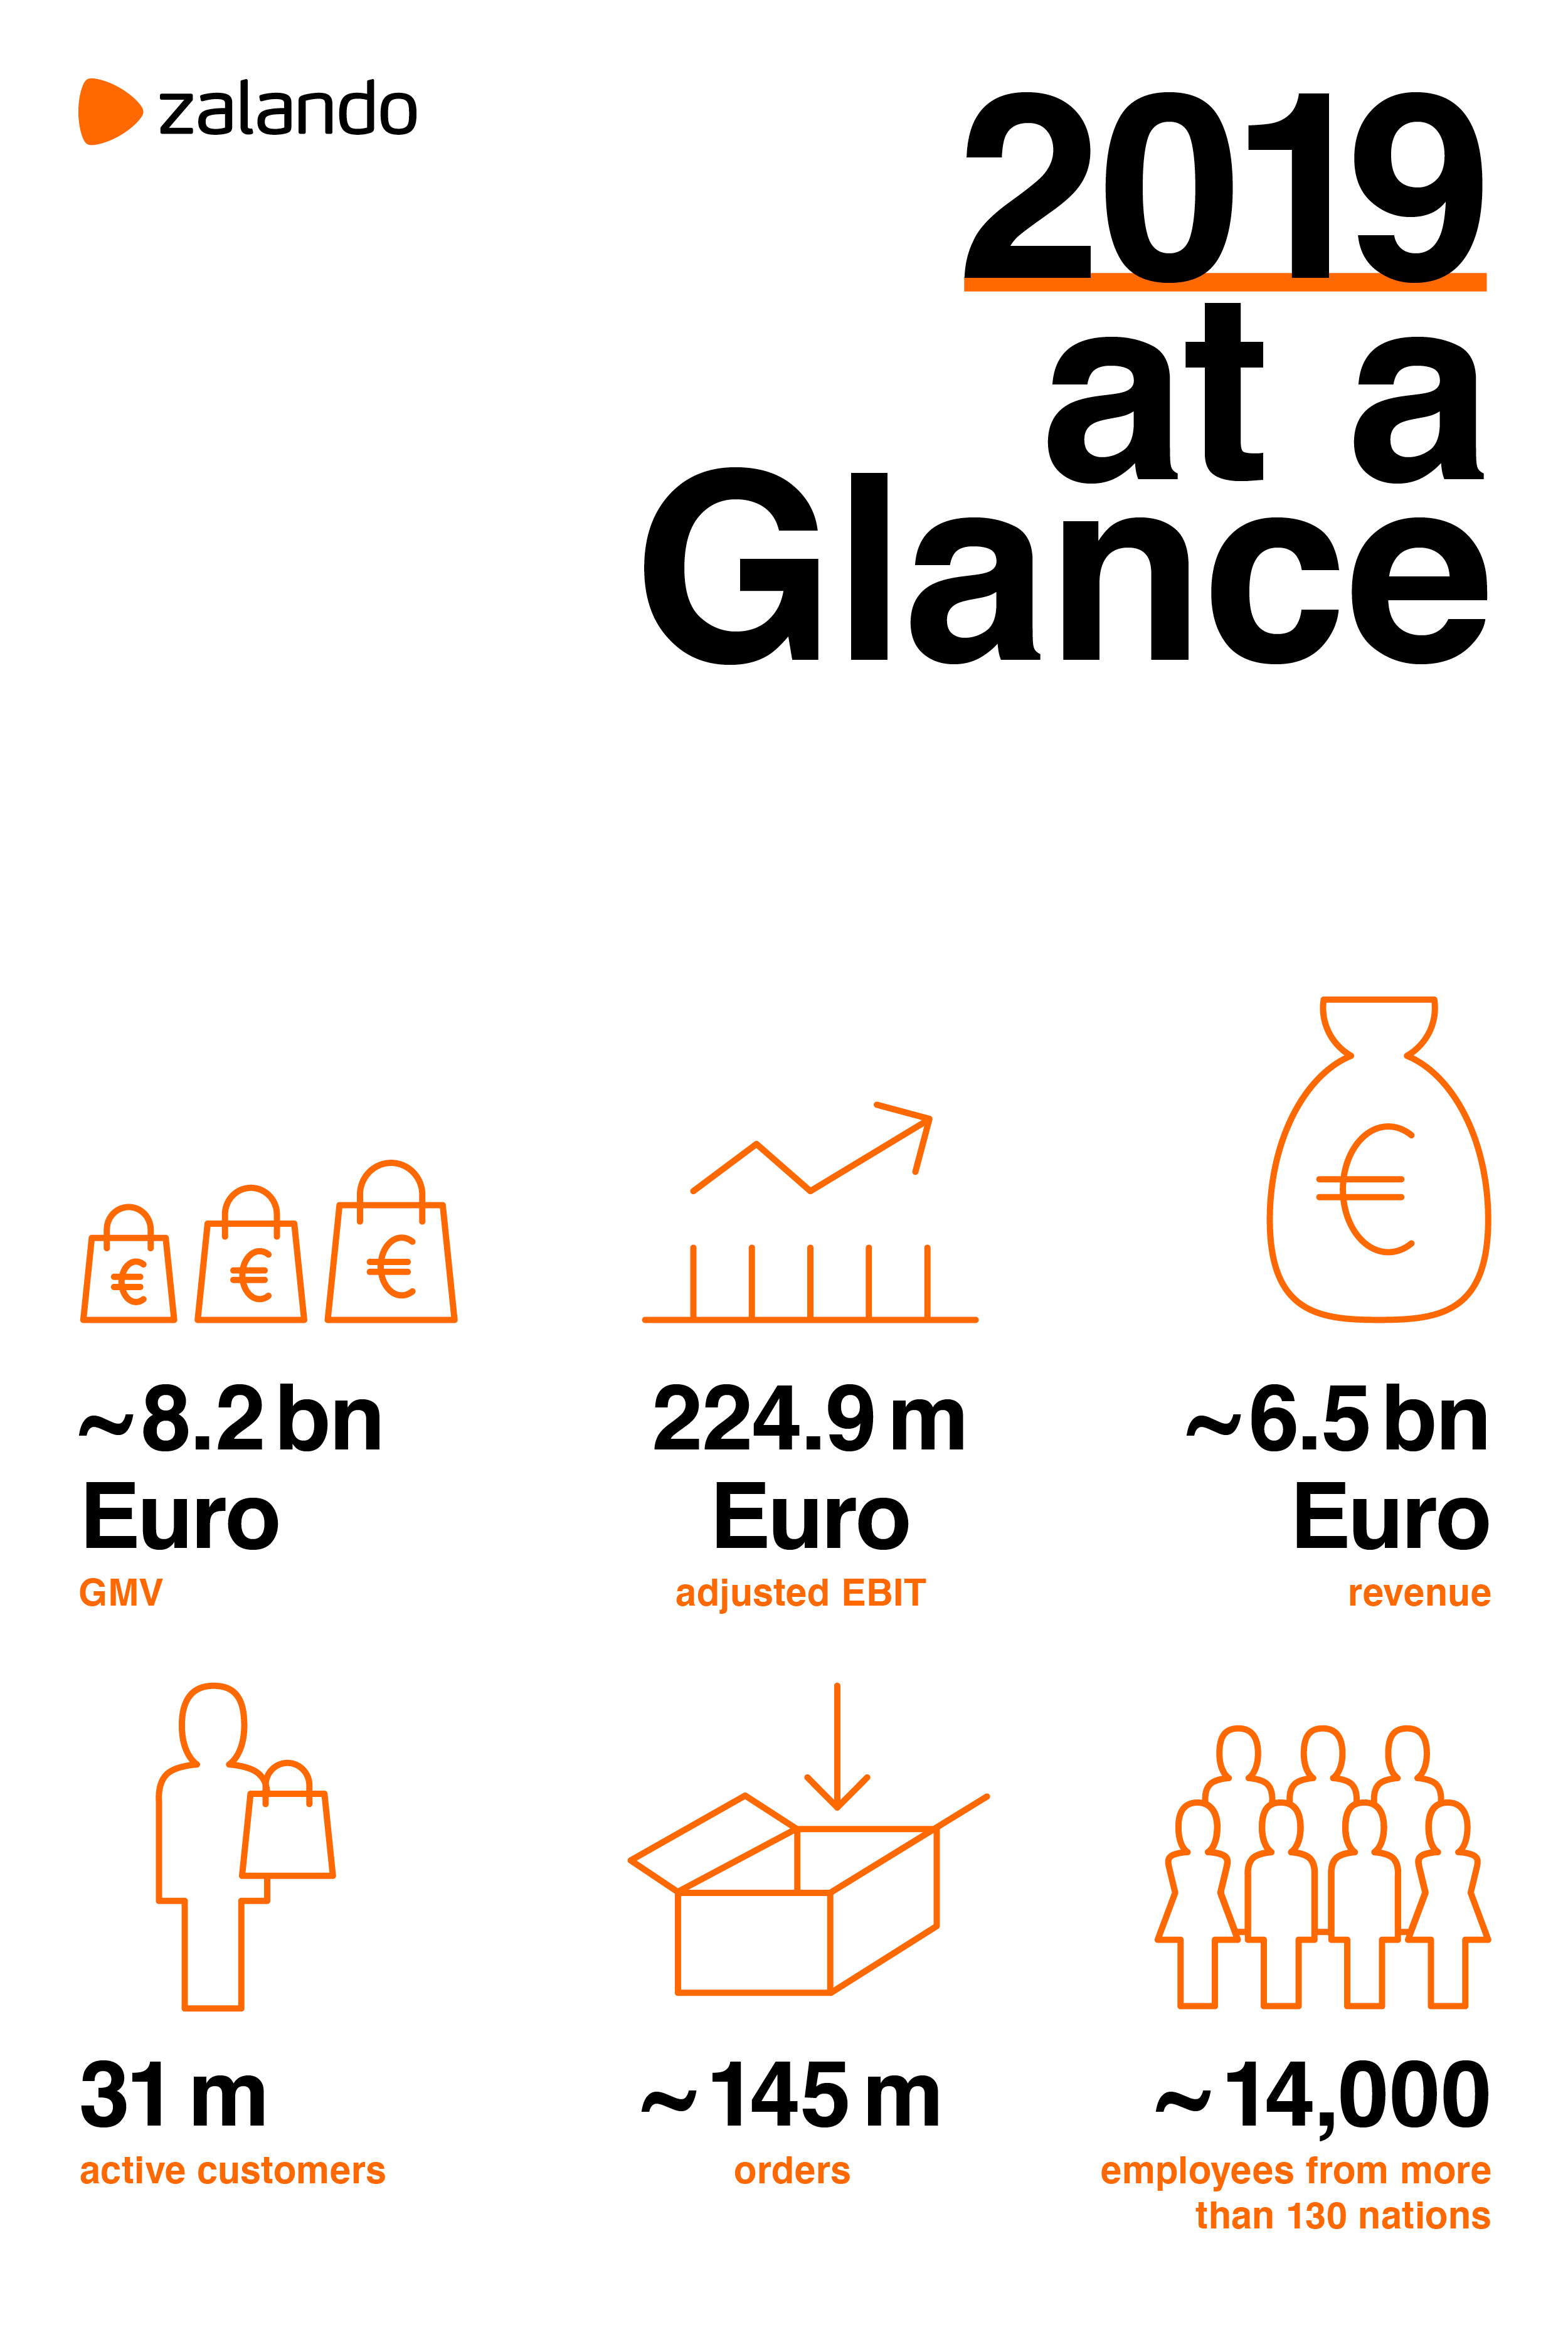 Zalando at a Glance 2019 - Download